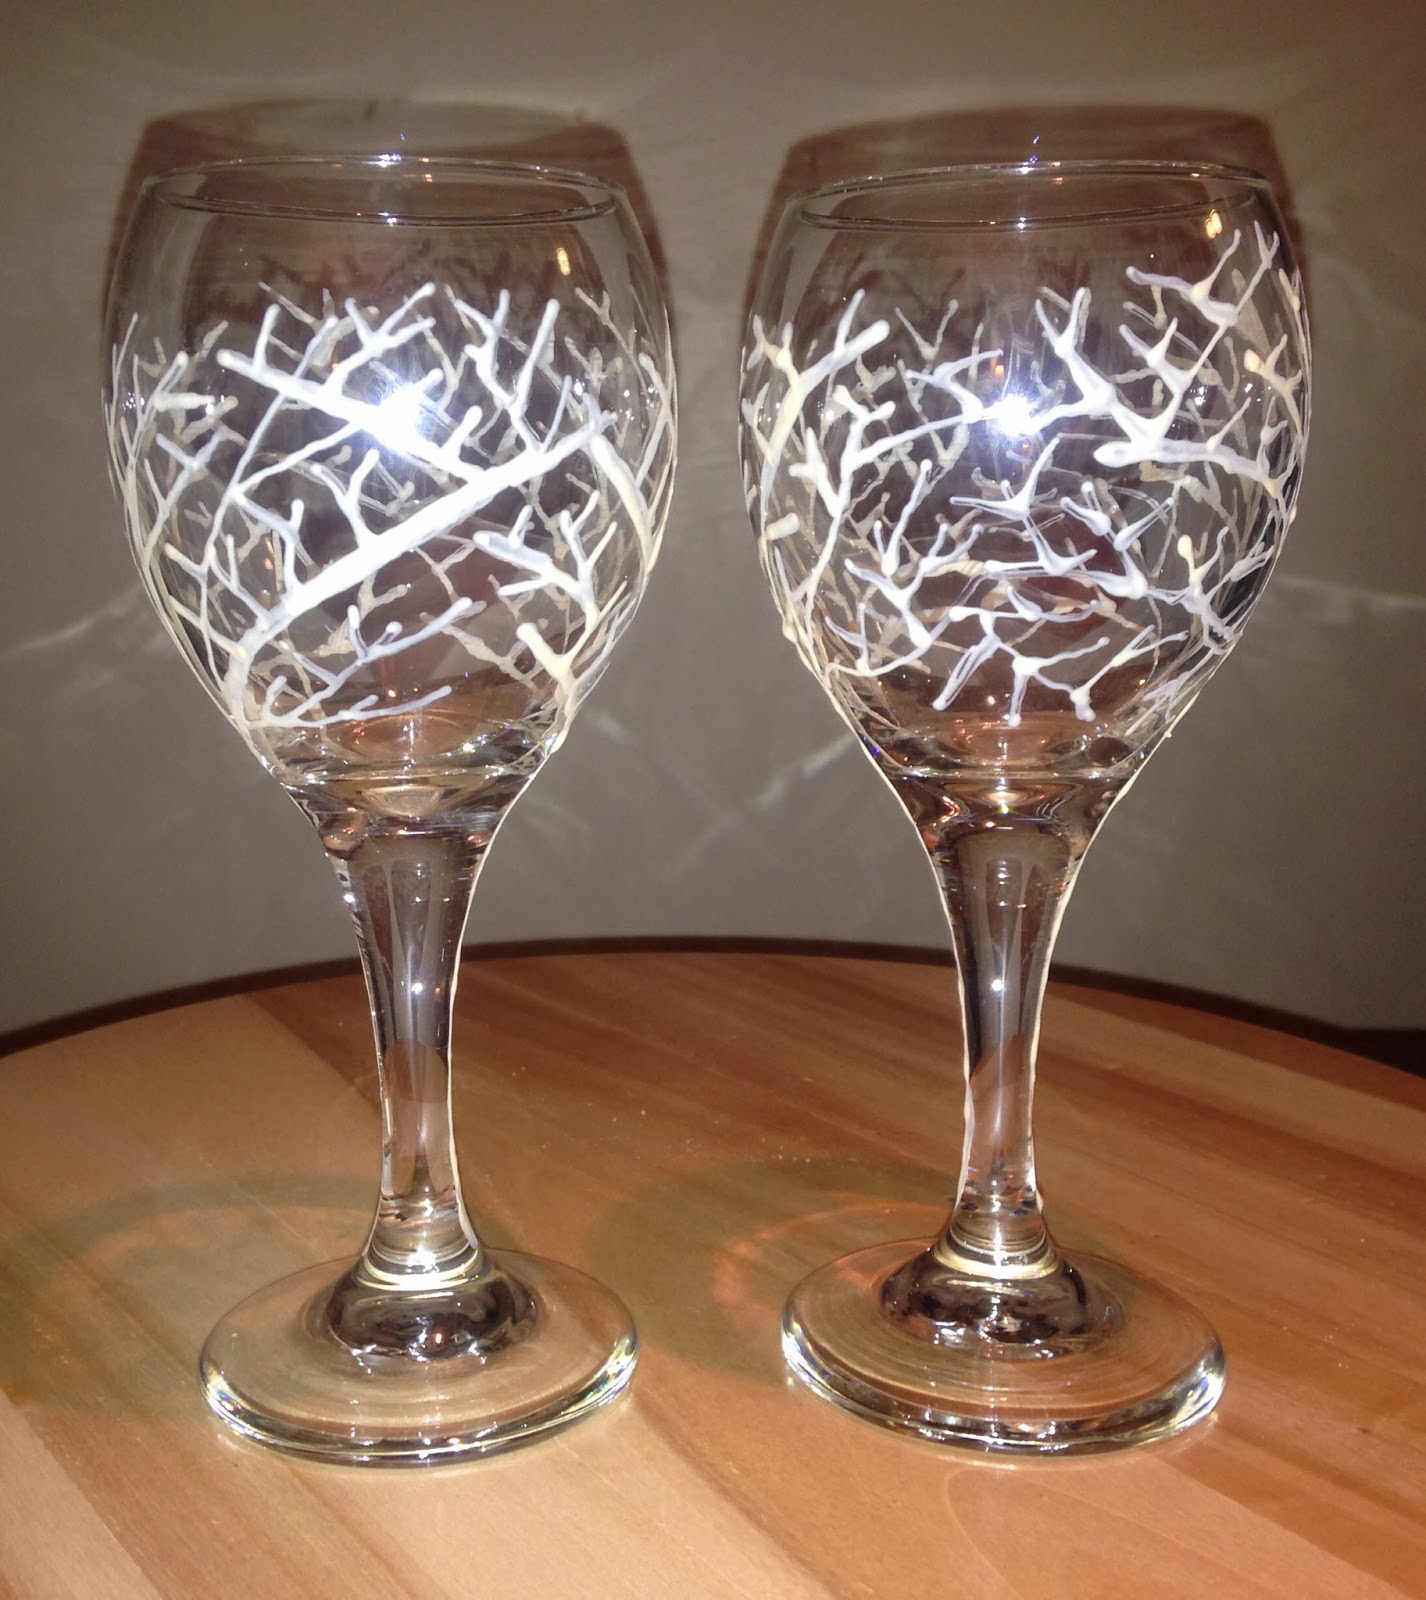 How to how hard and how much diy engraving glasses these would be a great bridesmaidgroomsmen gift weddinganniversary gift or heck give it to yourself and save the extra 60 for a good bottle wine solutioingenieria Image collections